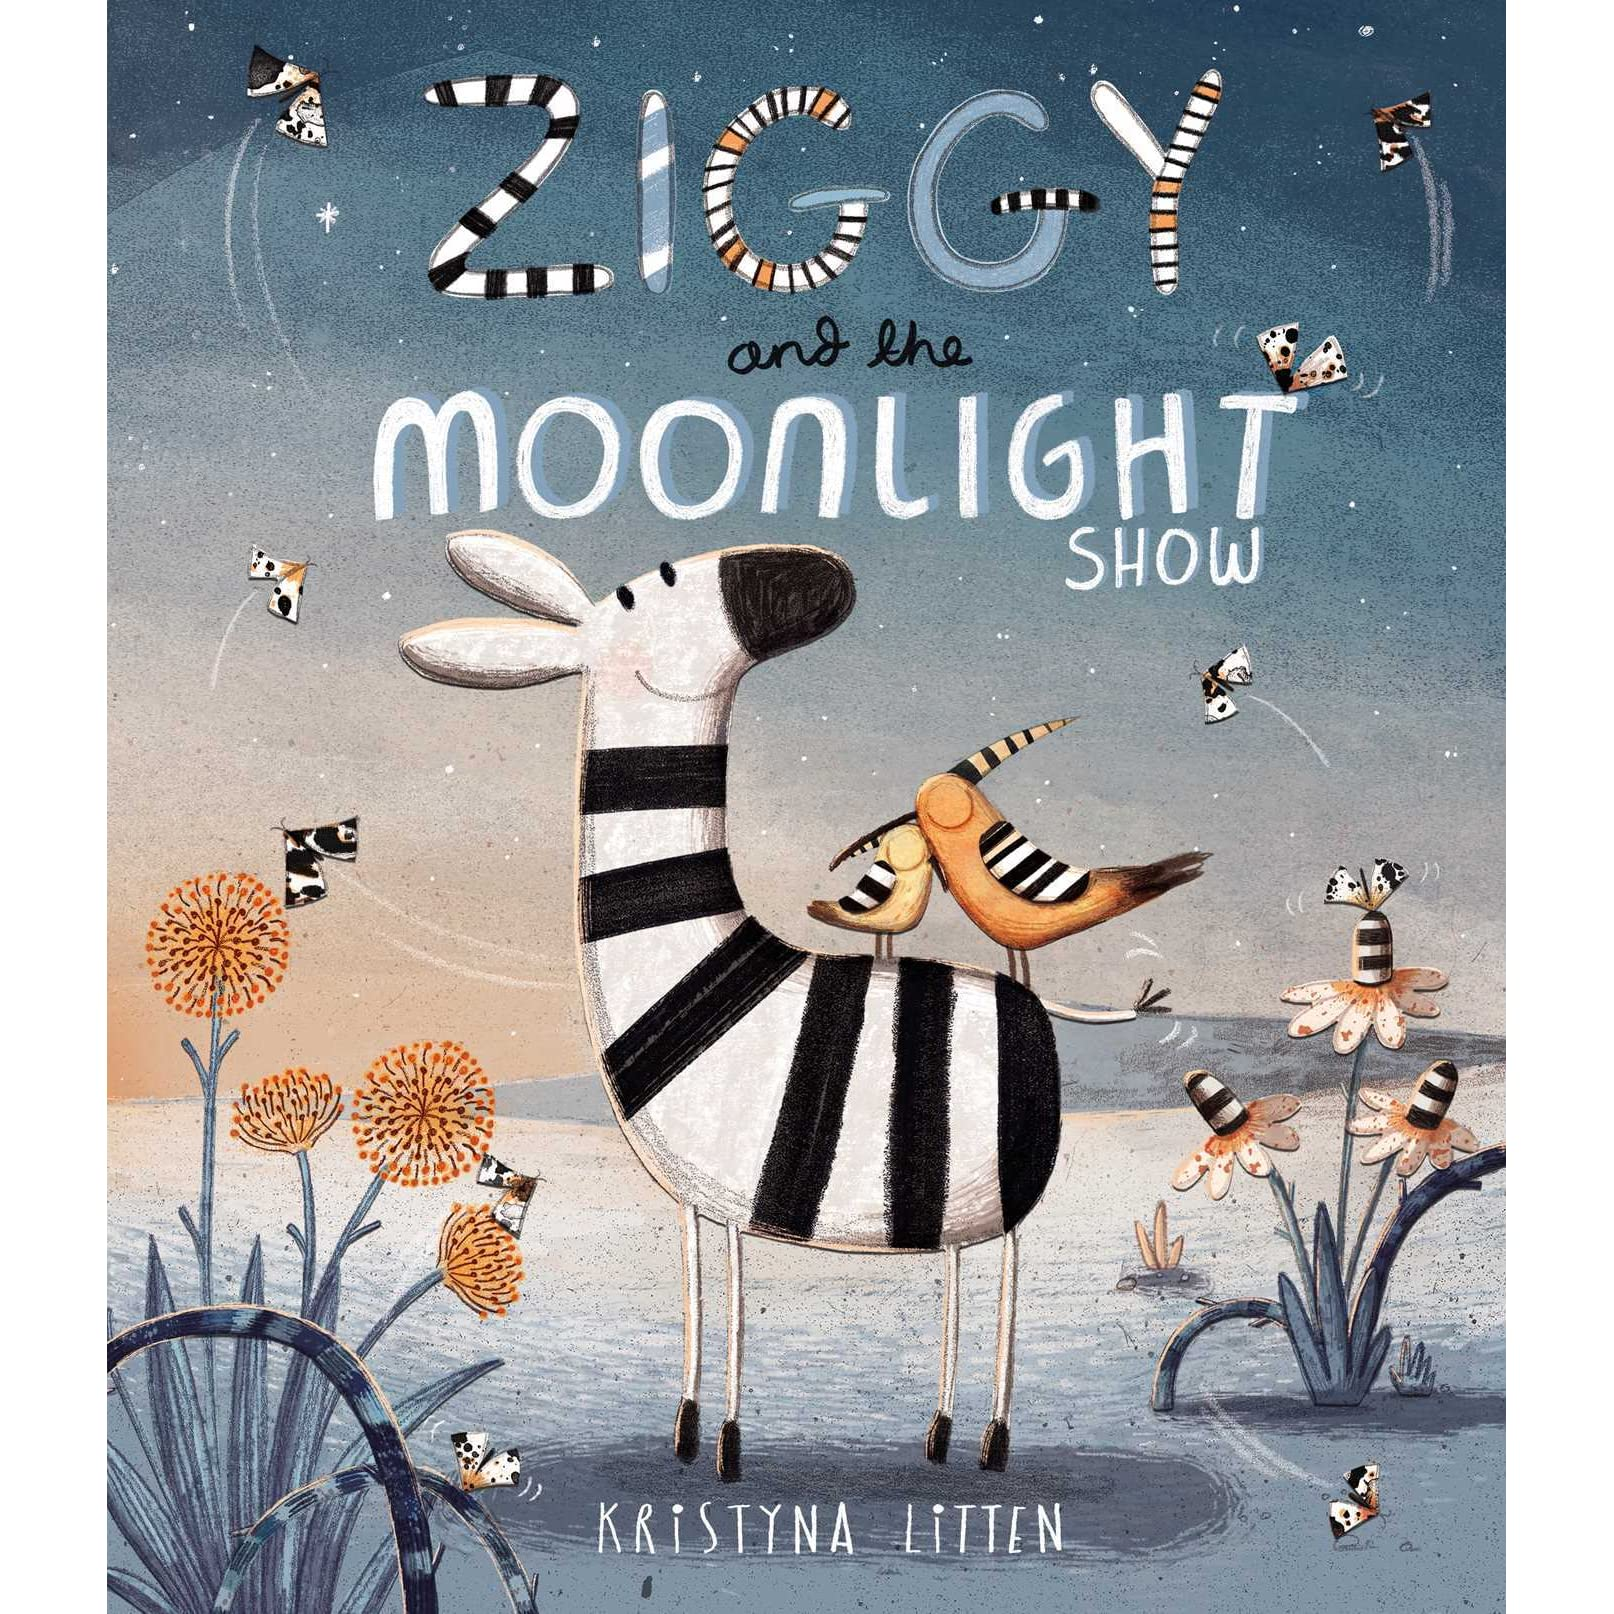 Ziggy and the Moonlight Show by Kristyna Litten on sumeer homes, samantha homes, bella homes, minnie homes, katie homes, victoria homes, rocky homes,